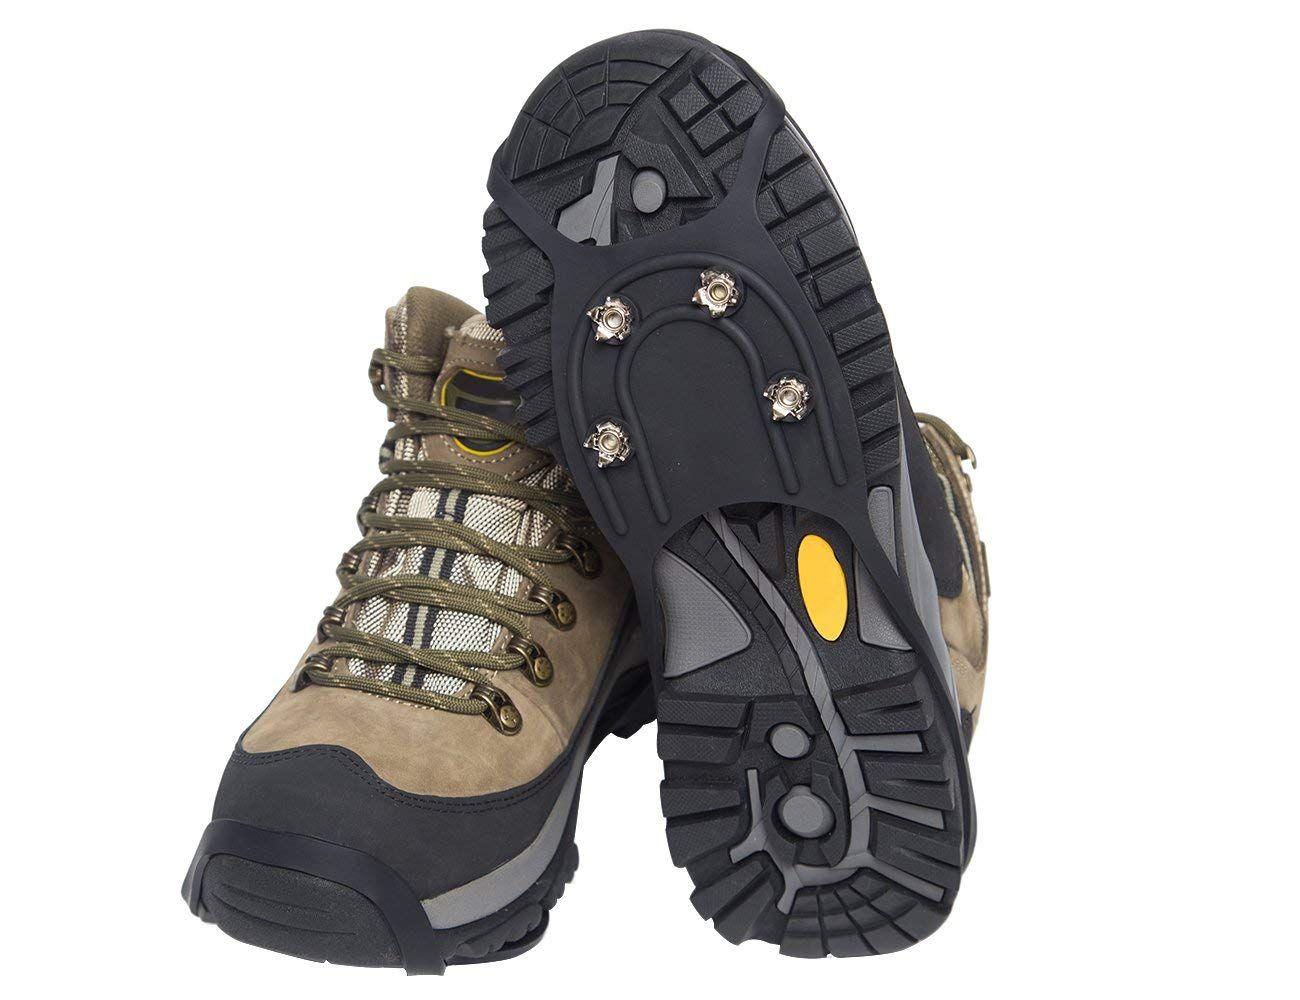 Ice Traction Cleats For Walking Jogging Or Hiking On Snow And Ice 20 Metal Ice Spikes Provide Stability Traction Grips Ice 2 Jogging Hiking Boots Cleats